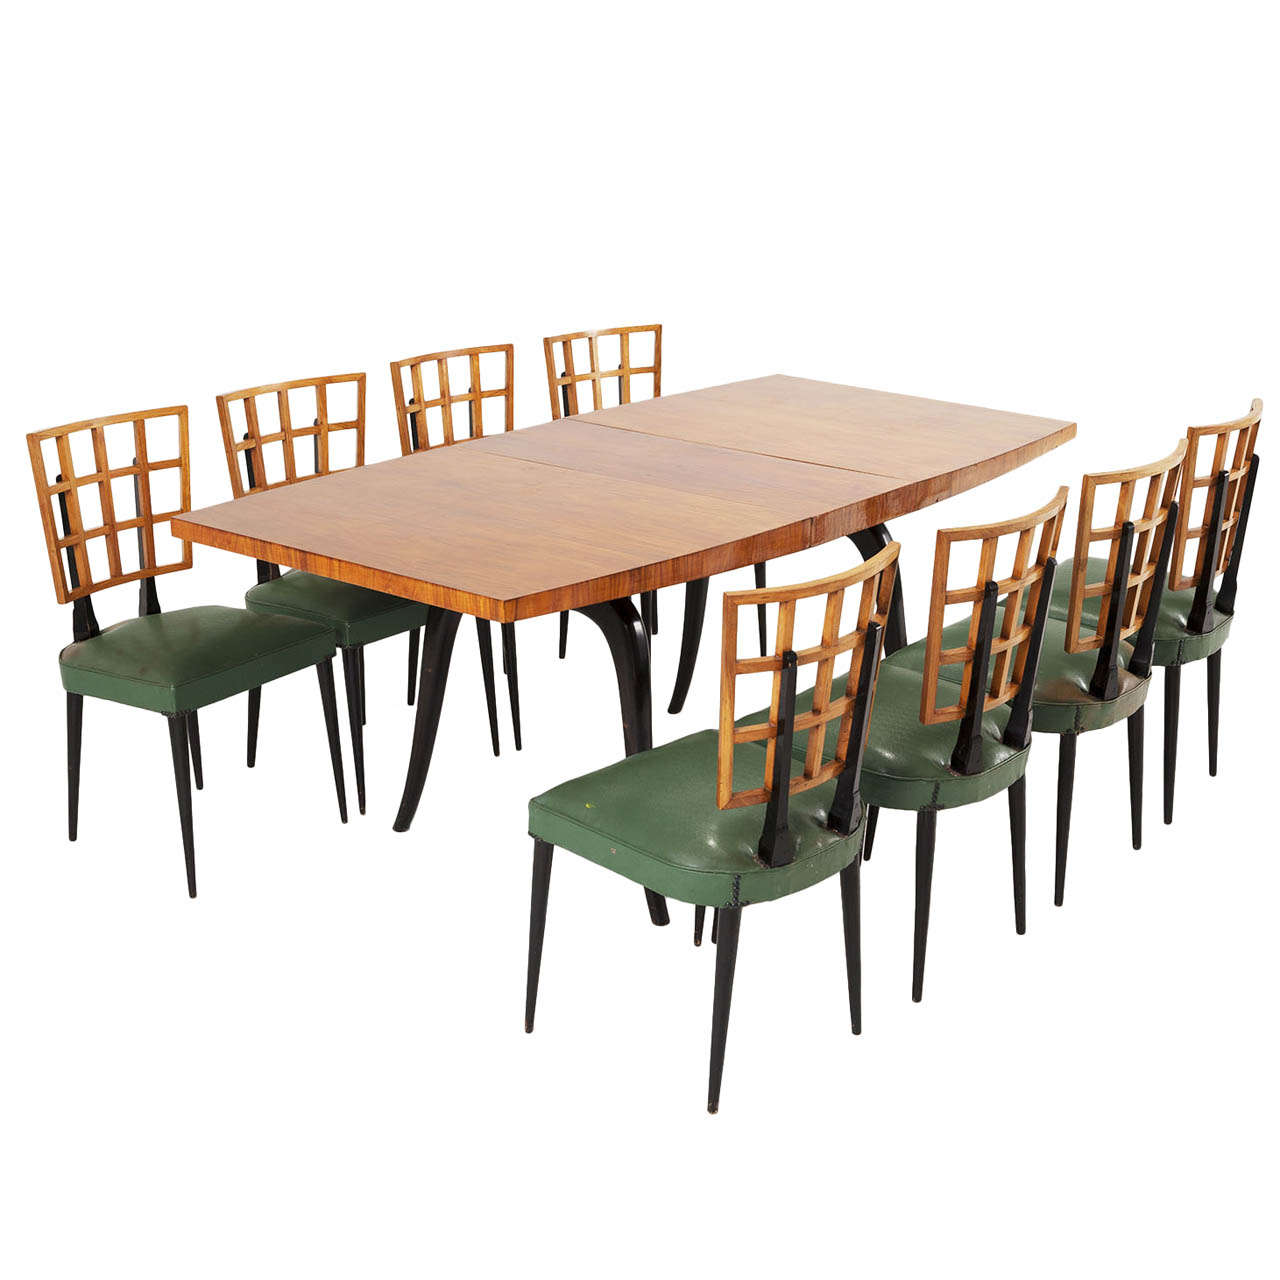 Highly rare 39 bossa nova 39 dining room set brazil 1950 39 s for Complete dining room sets